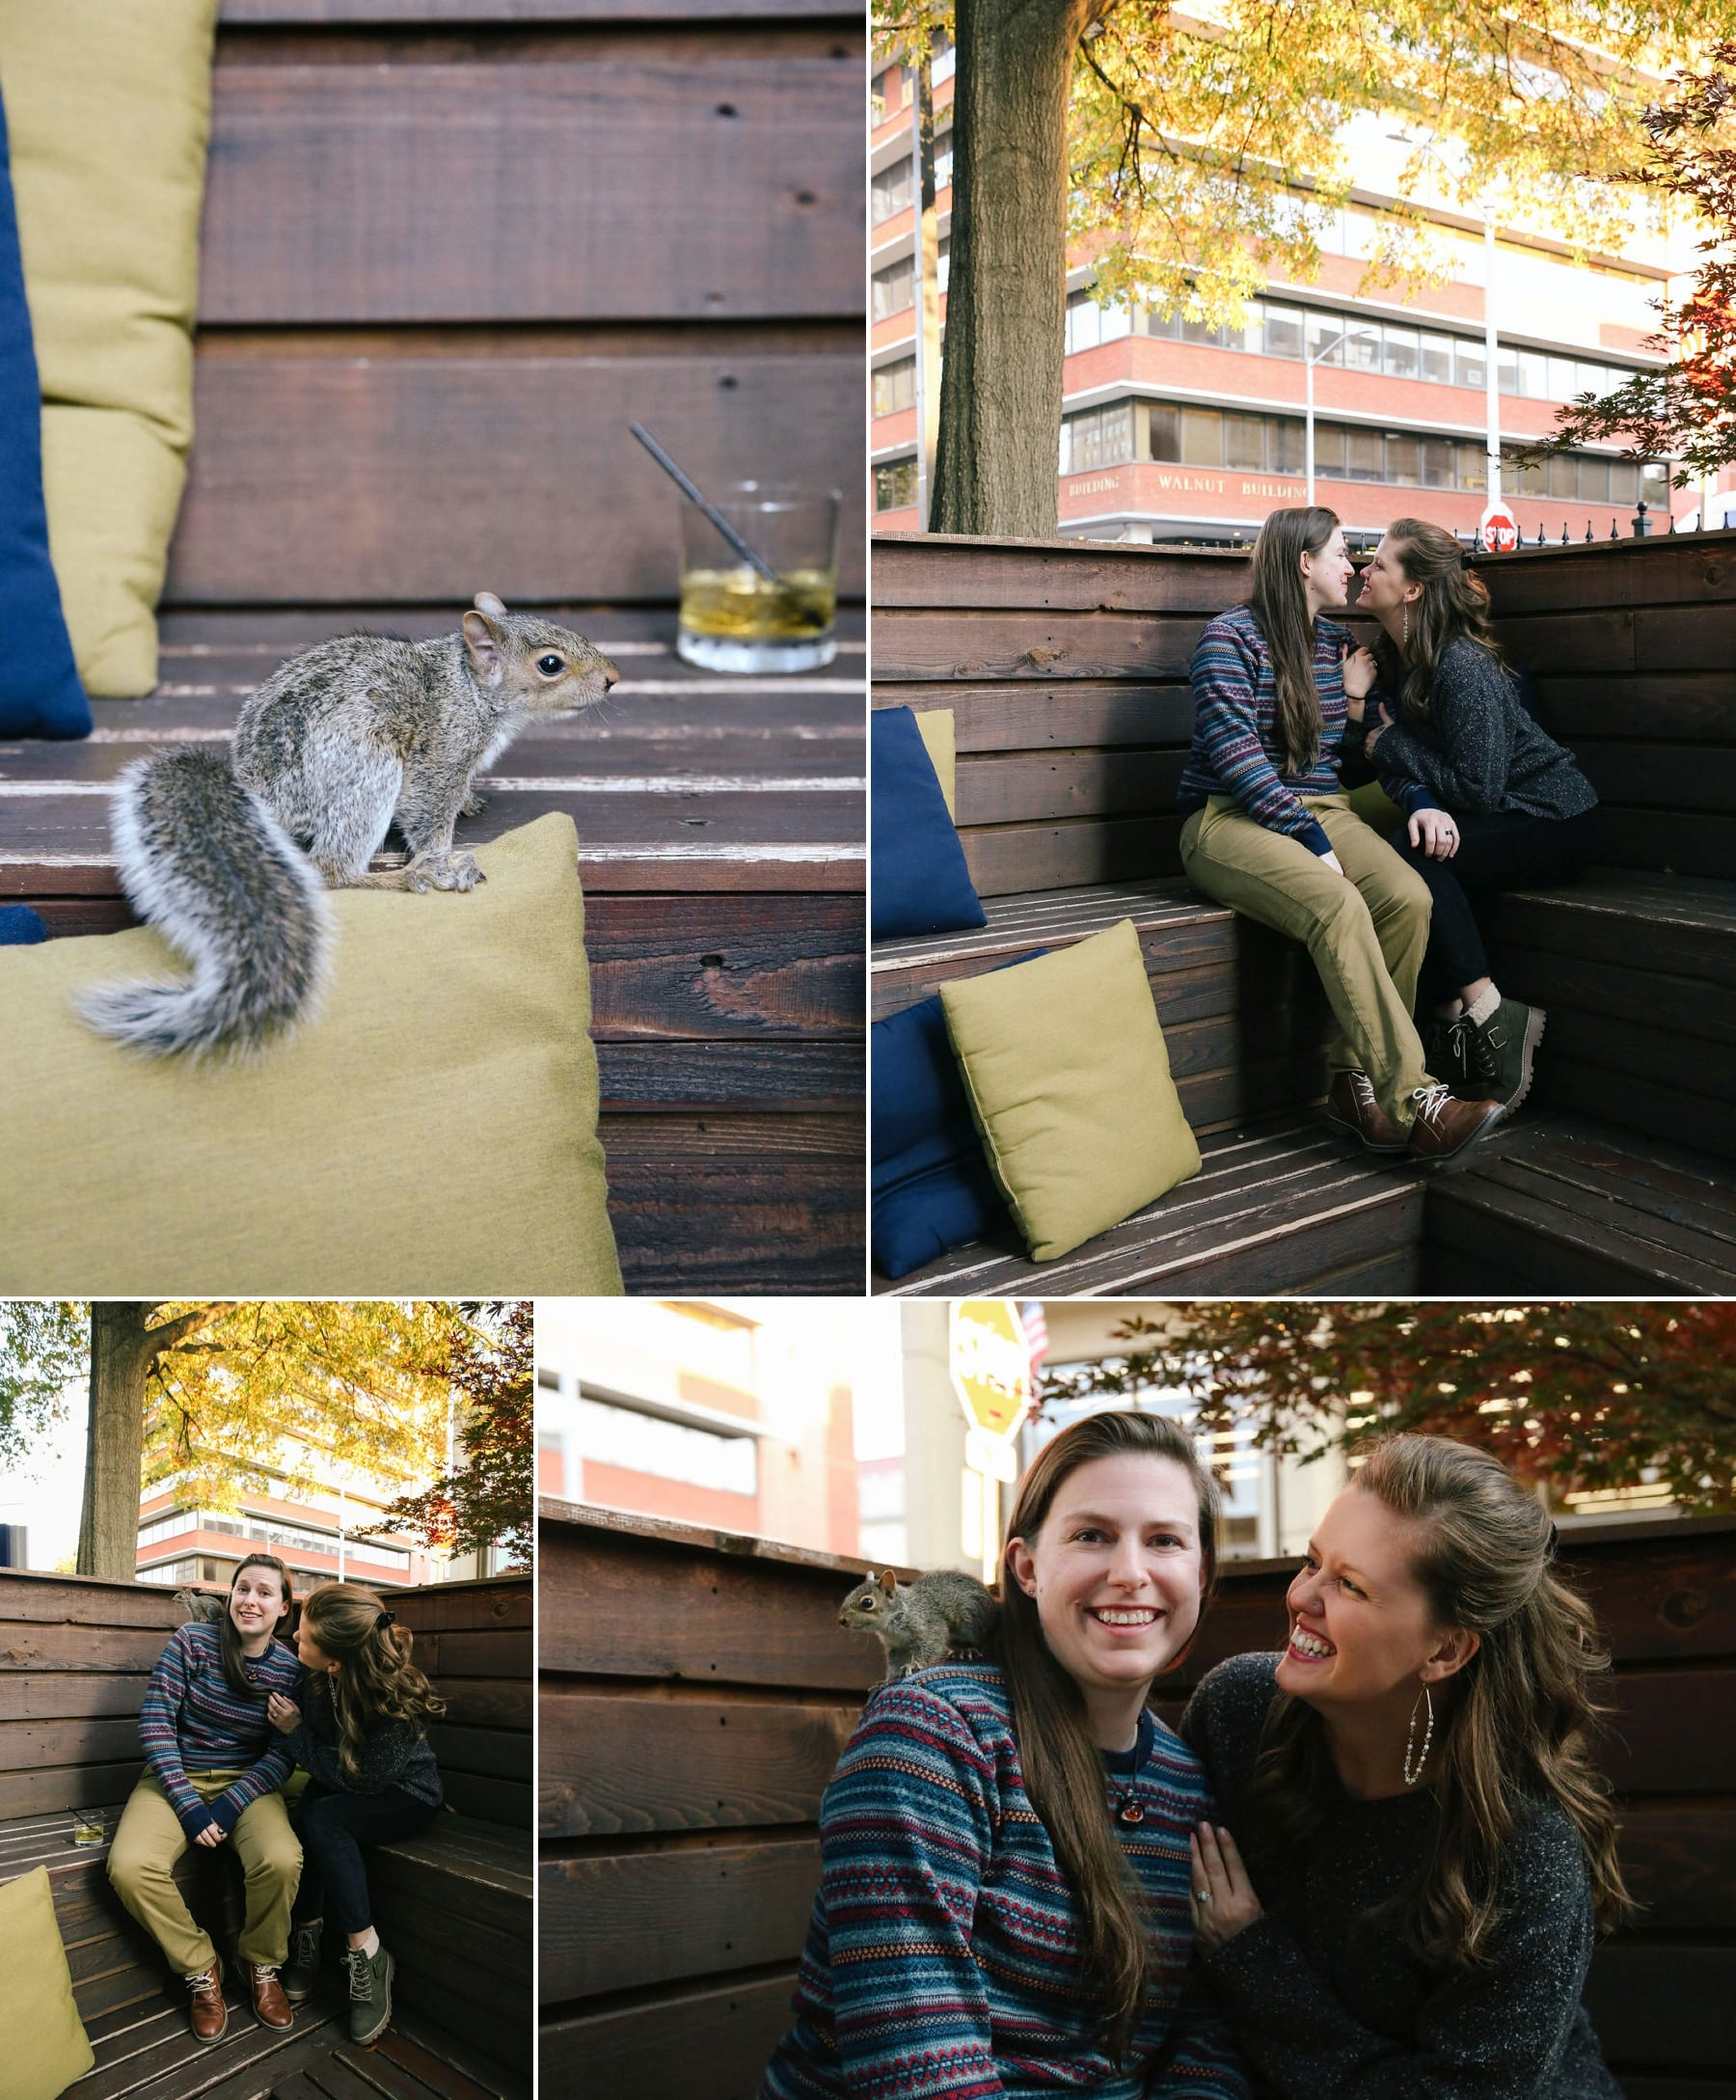 Hilarious moment when a squirrel crashes an engagement session